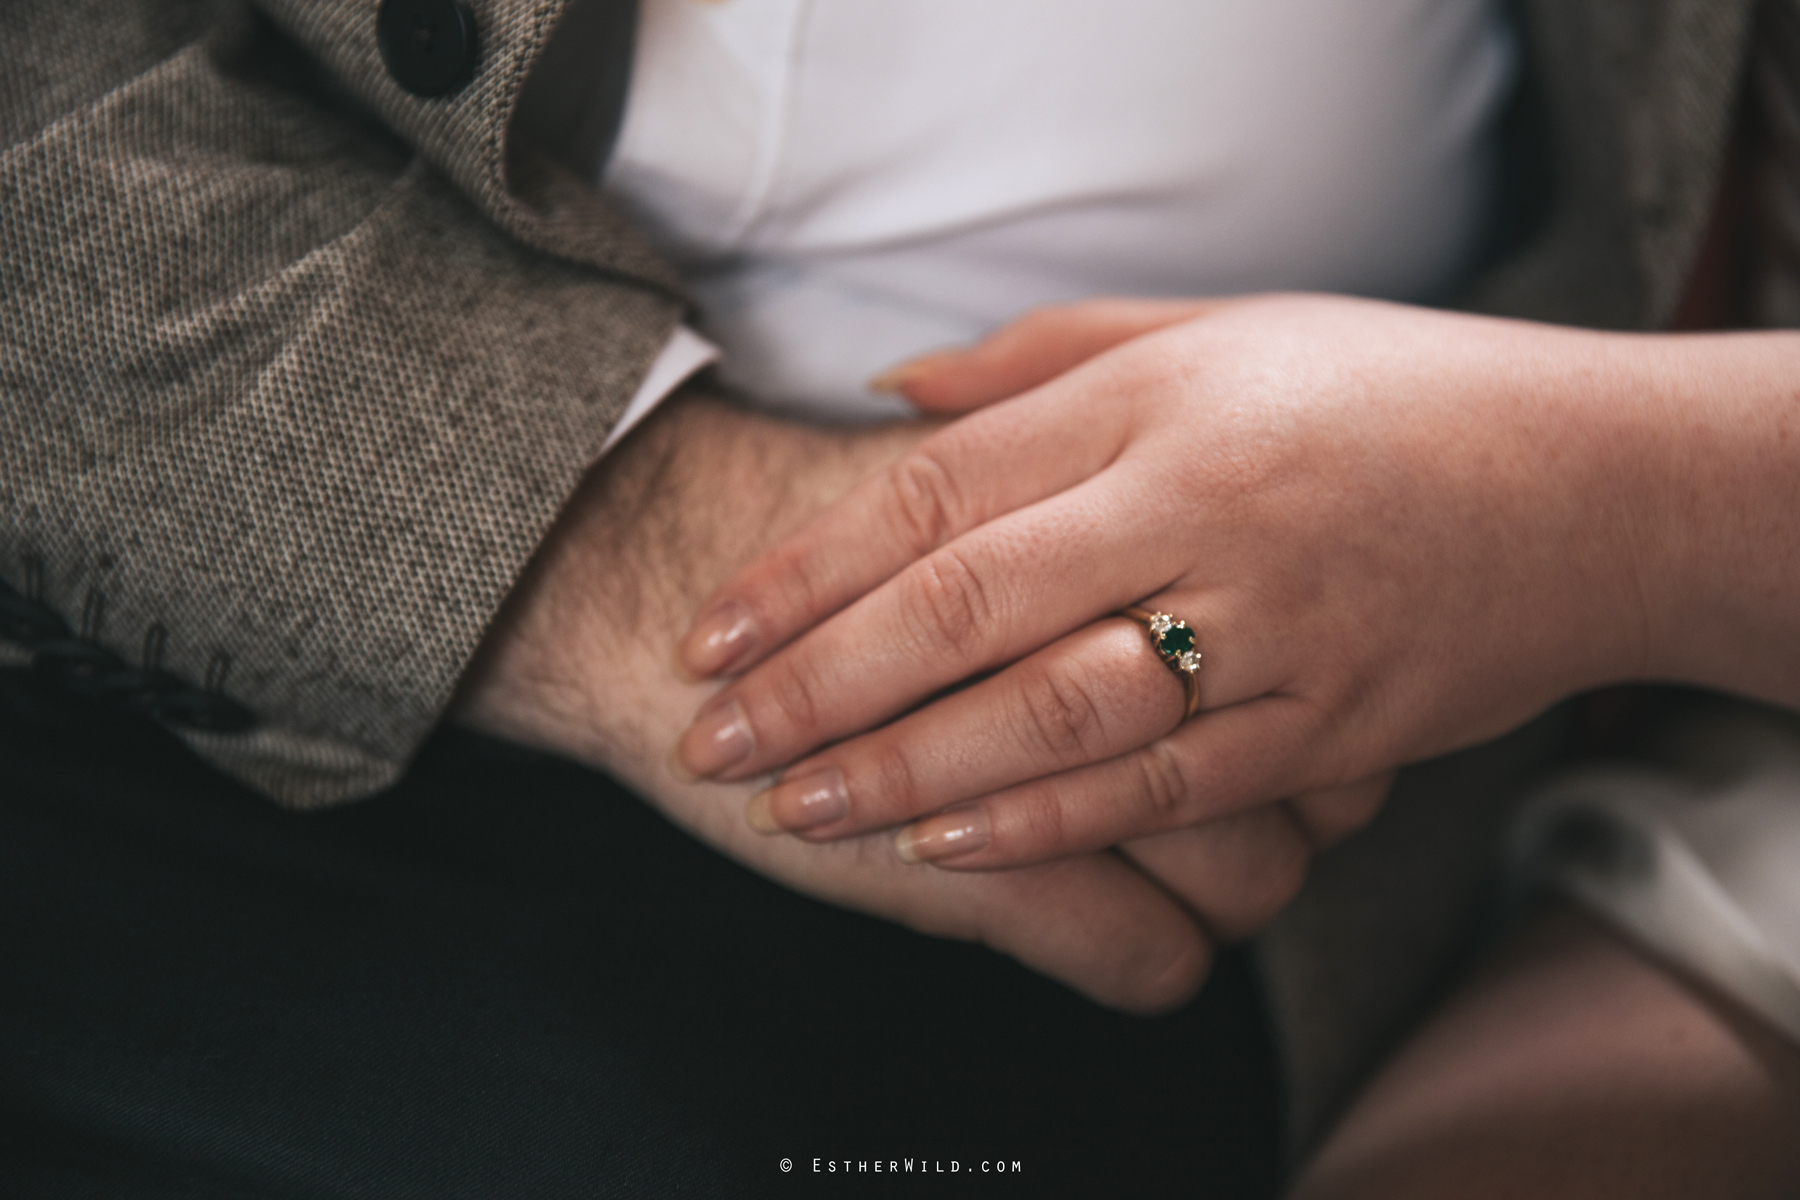 Norwich_Cathedral_Photo_Session_Engagement_Love_Pre-Wedding_IMG_3453.jpg